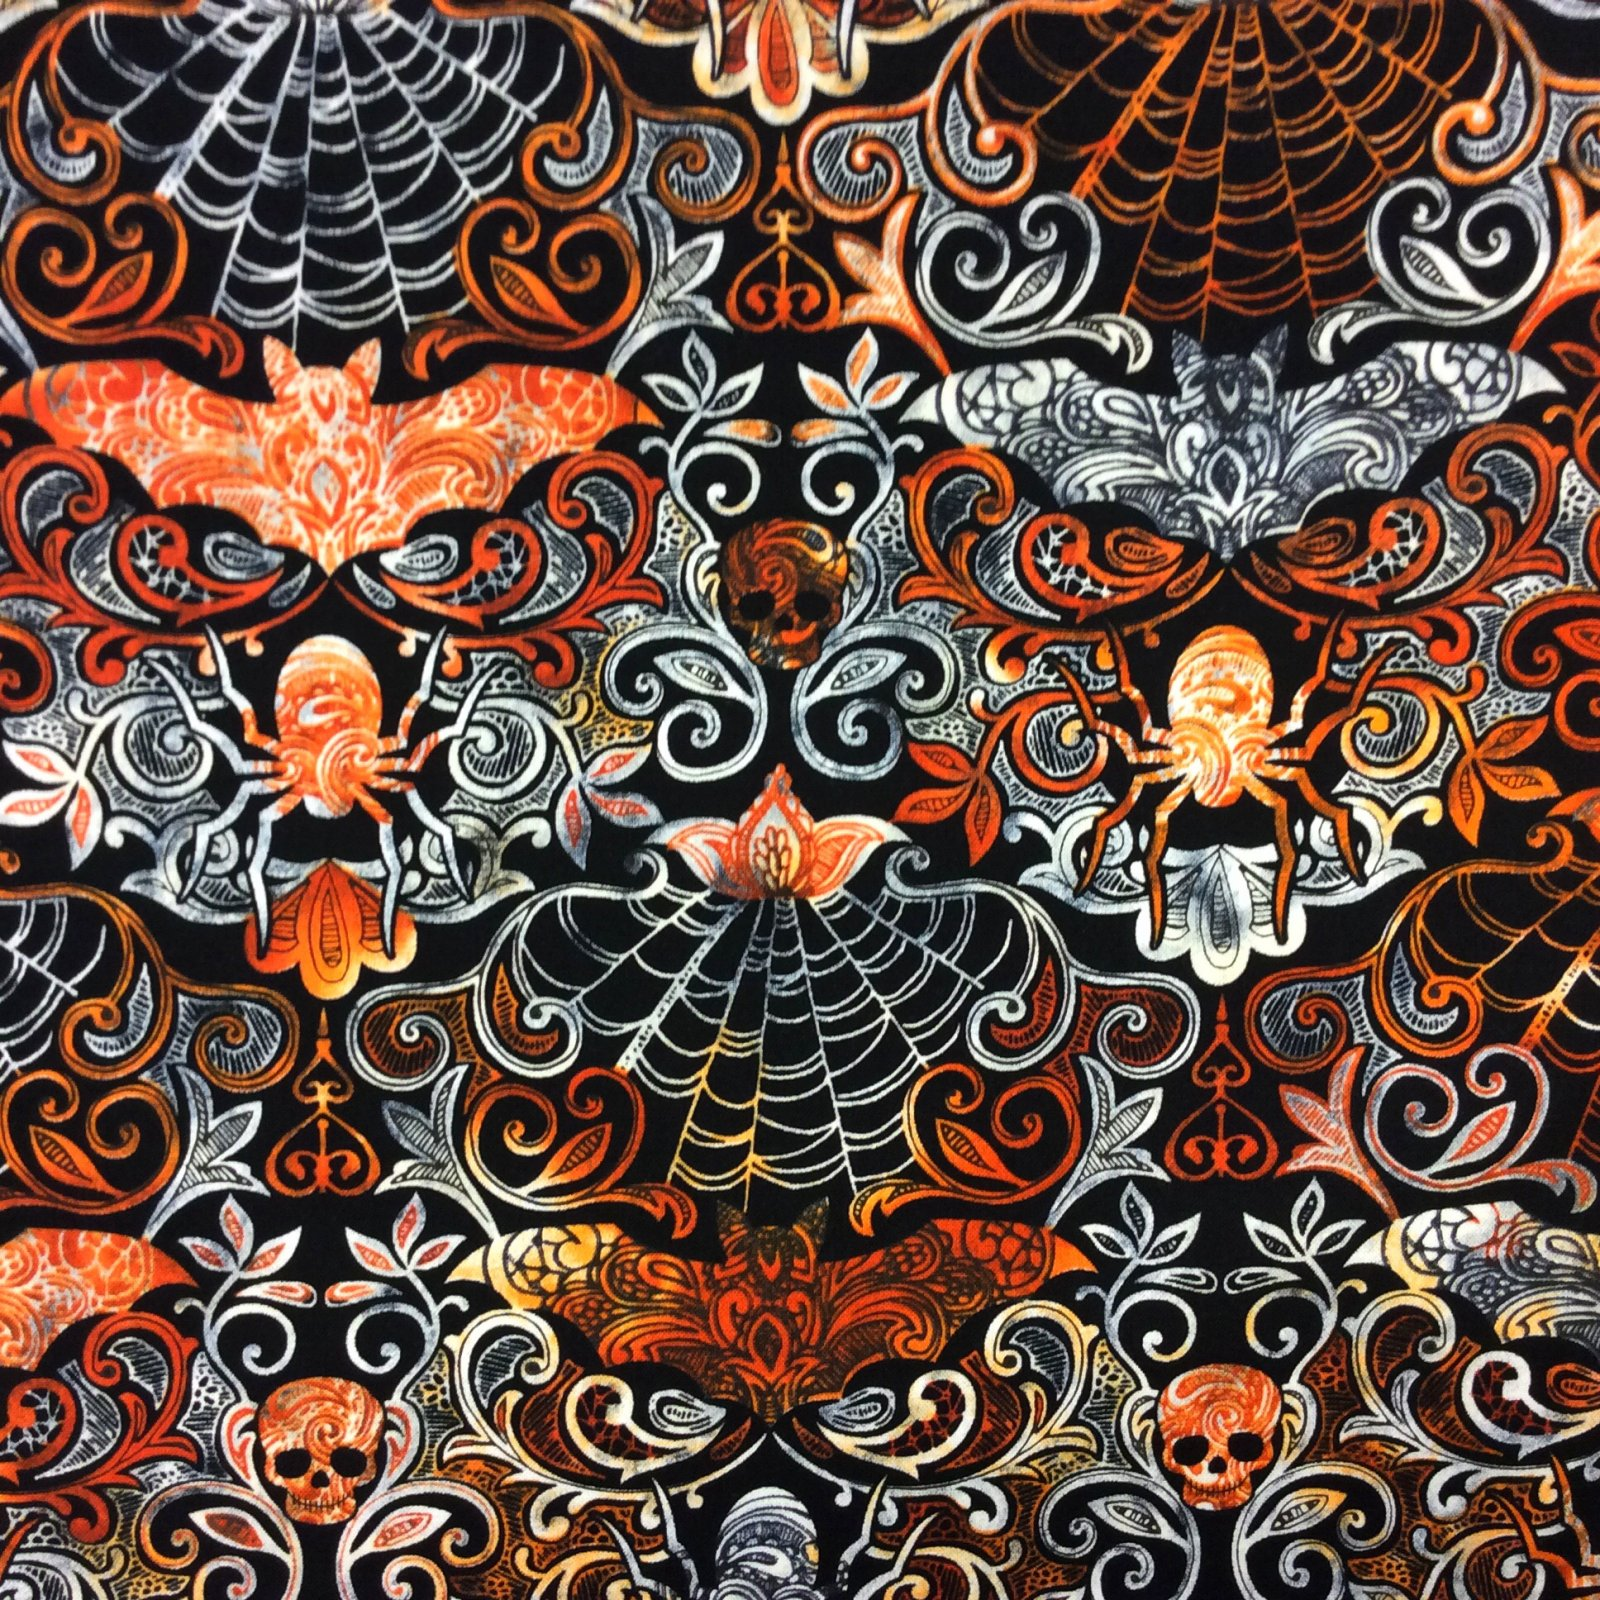 FT97 Halloween Spooky Scary Skull Damask Paisley Spider Bat Cotton Quilt Fabric